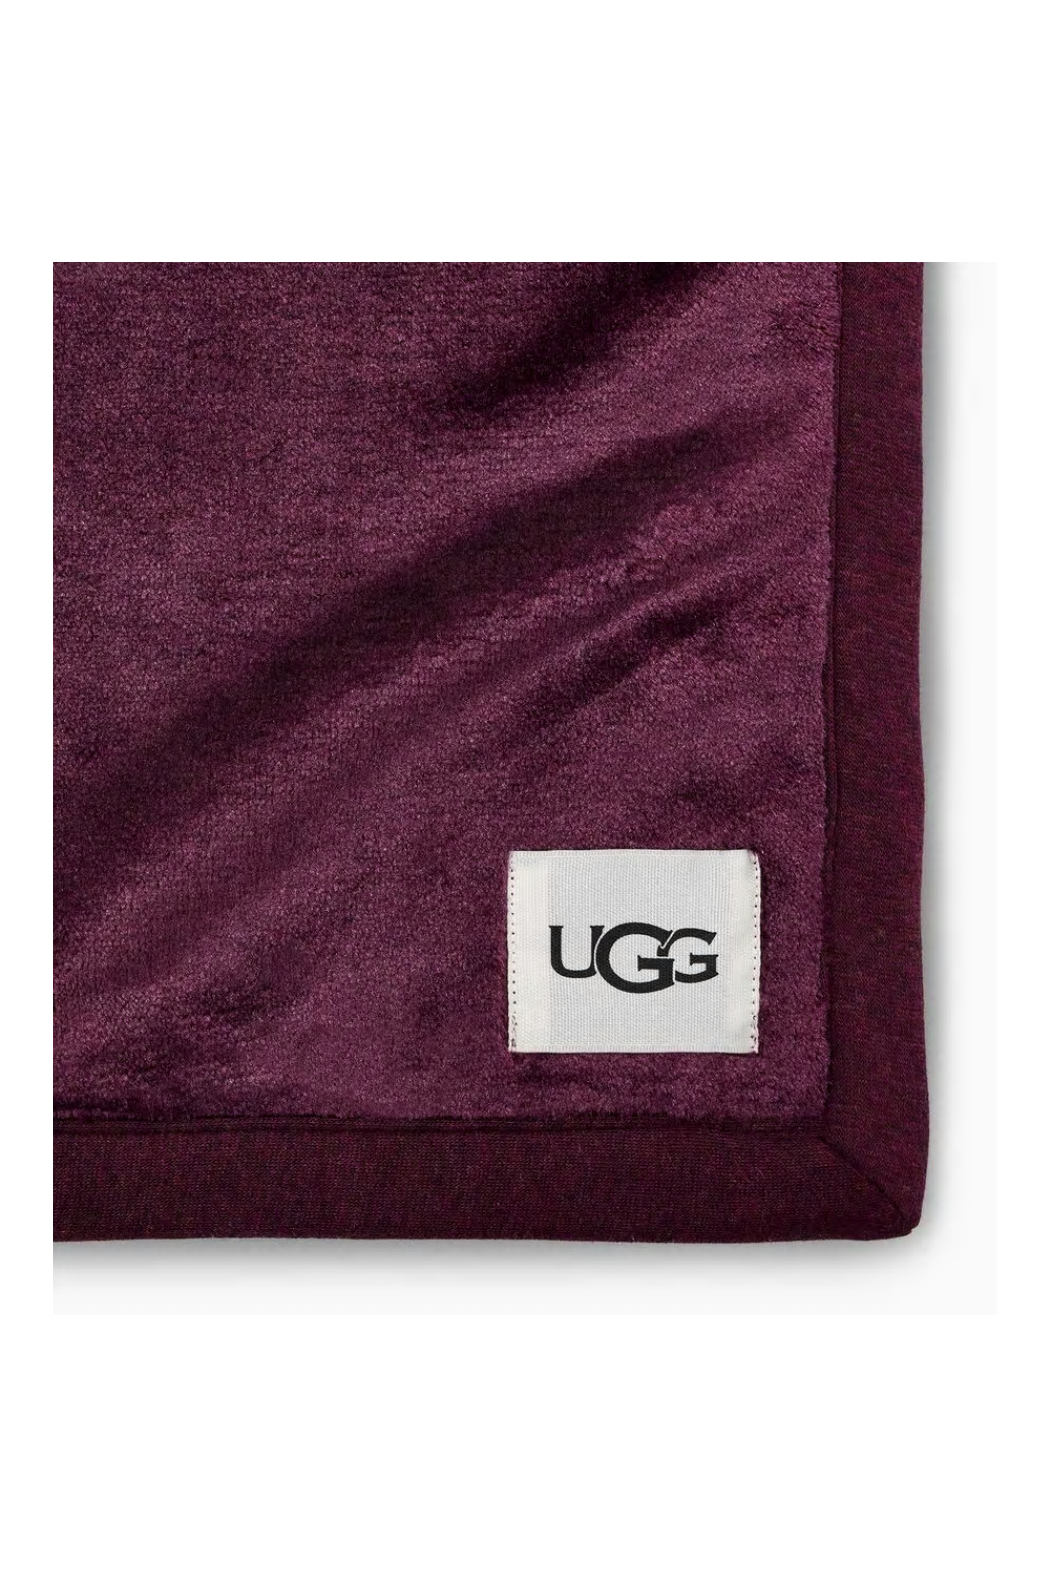 Ugg DUFFIELD THROW II - Front Full Image